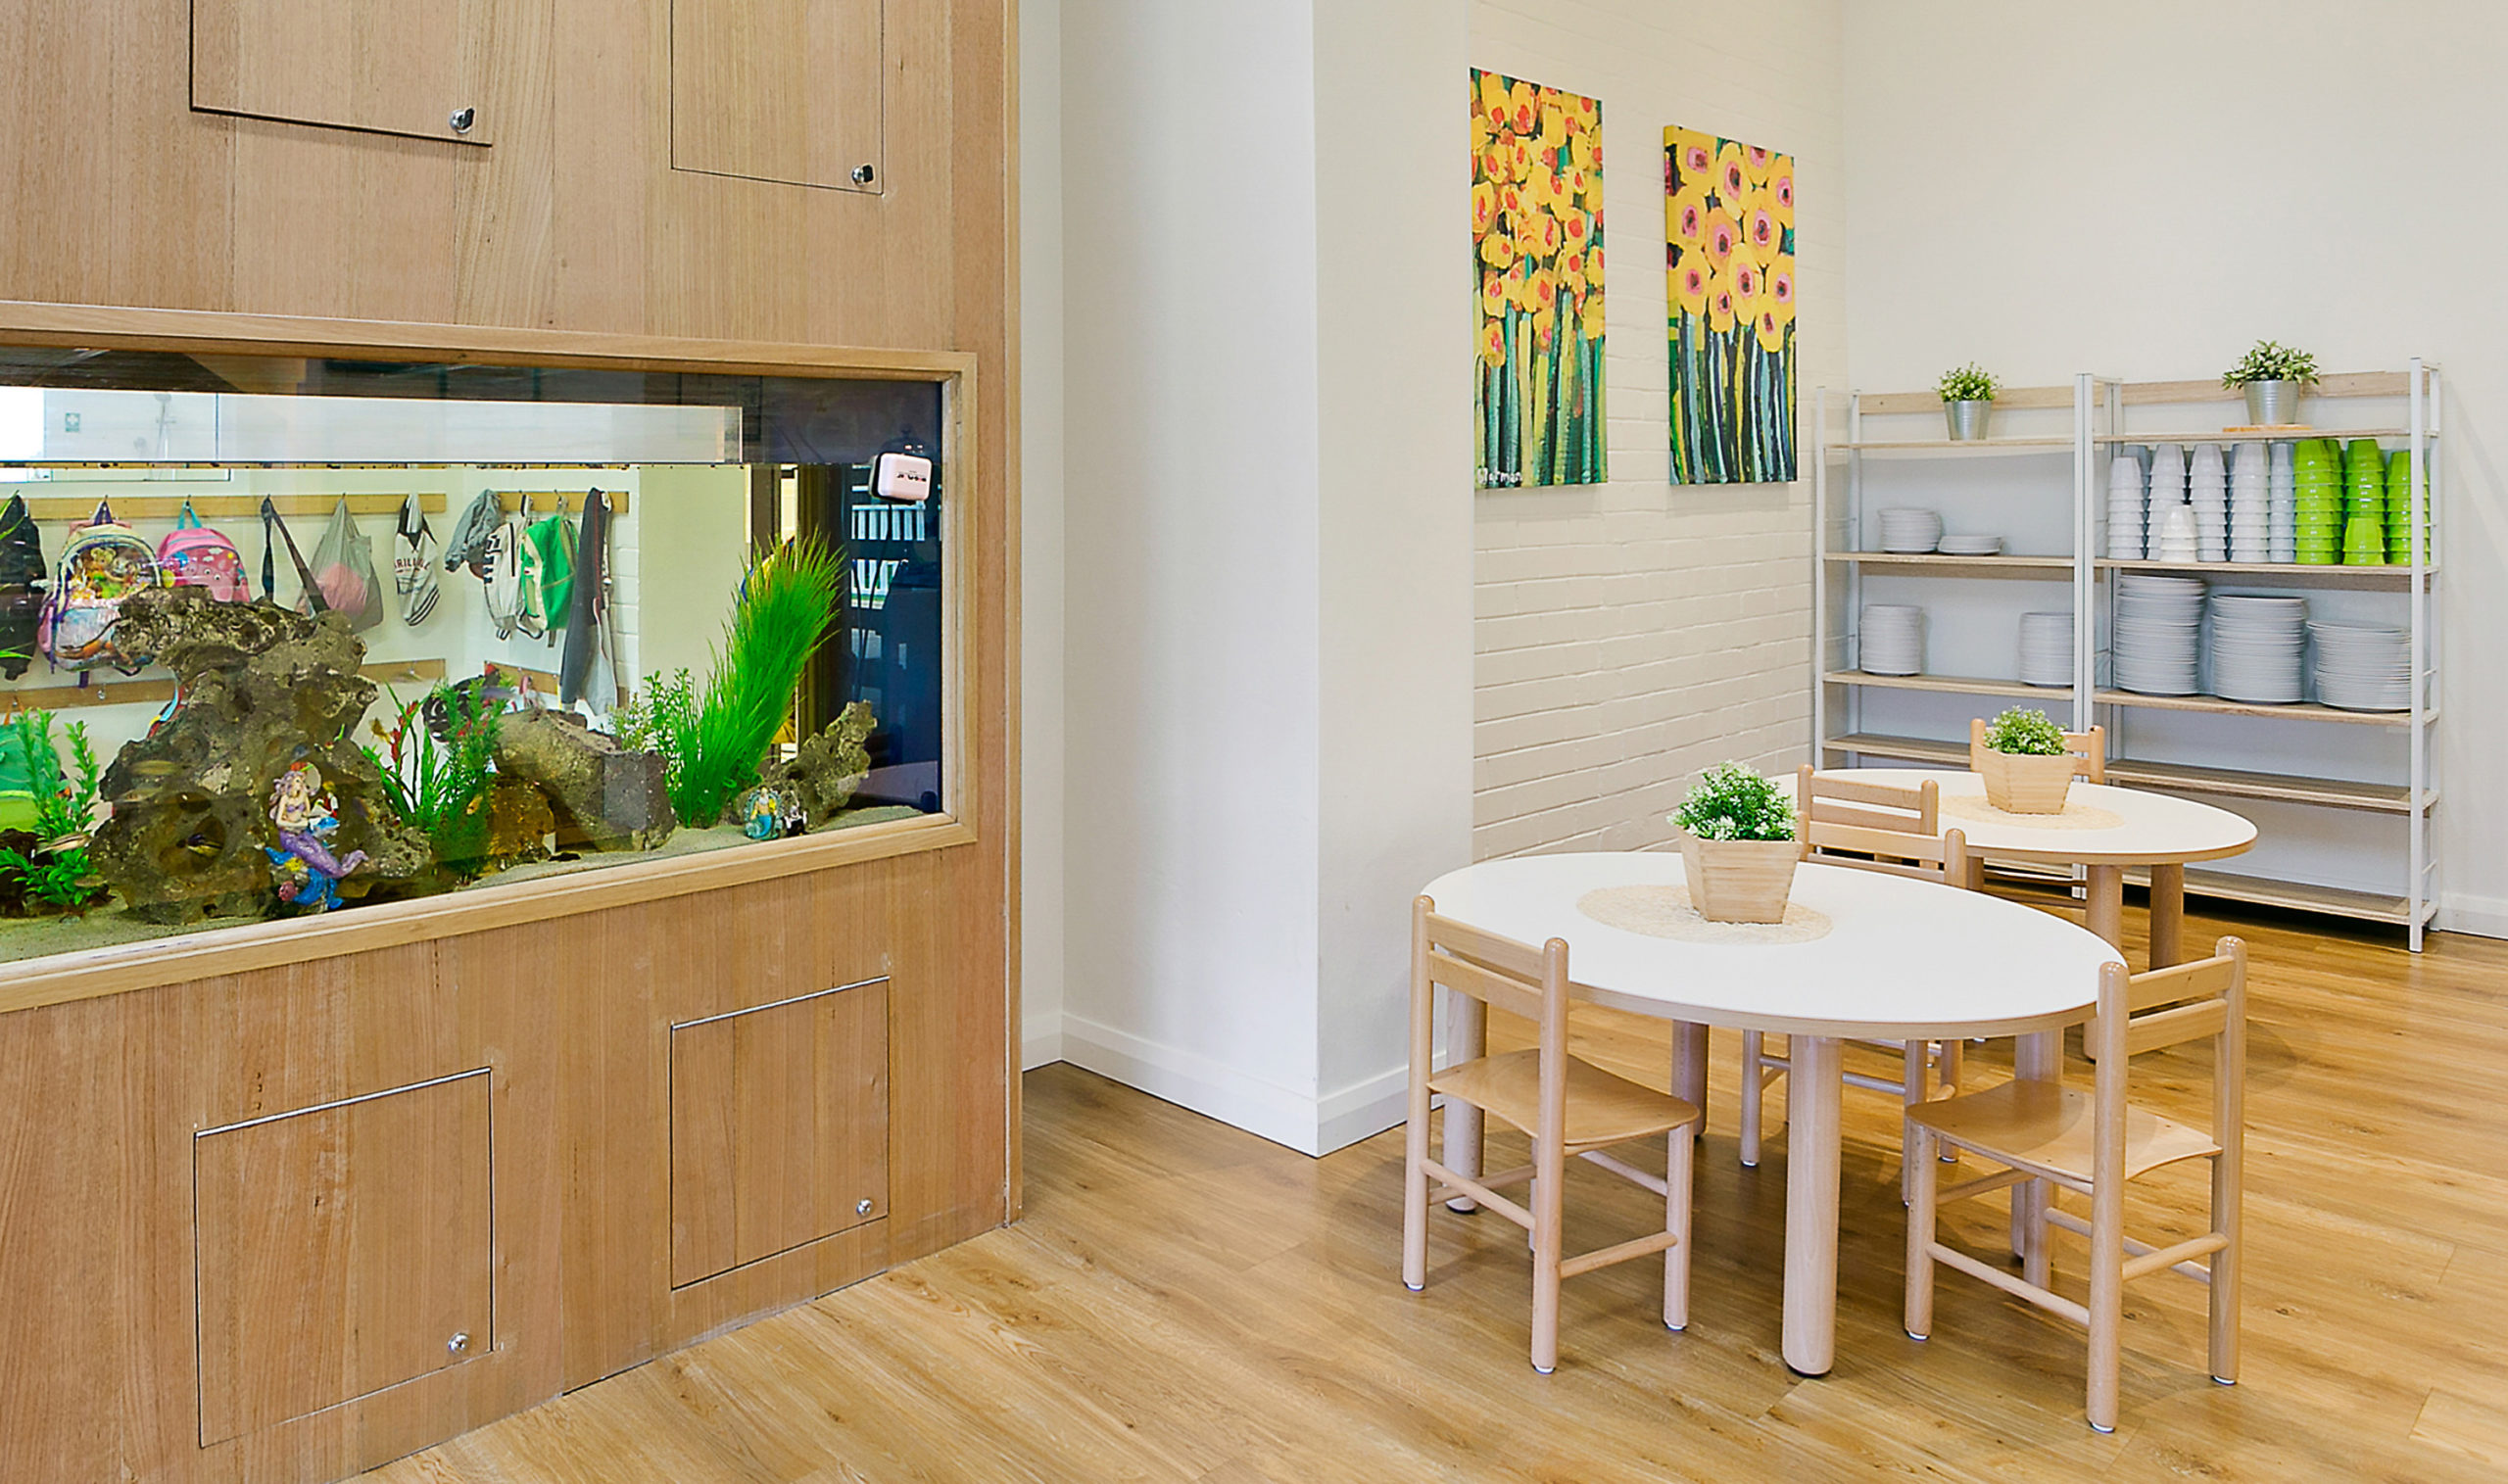 Only About Children Childcare Surry Hills Fish Tank and Seating Area – Gardner Wetherill GW 01